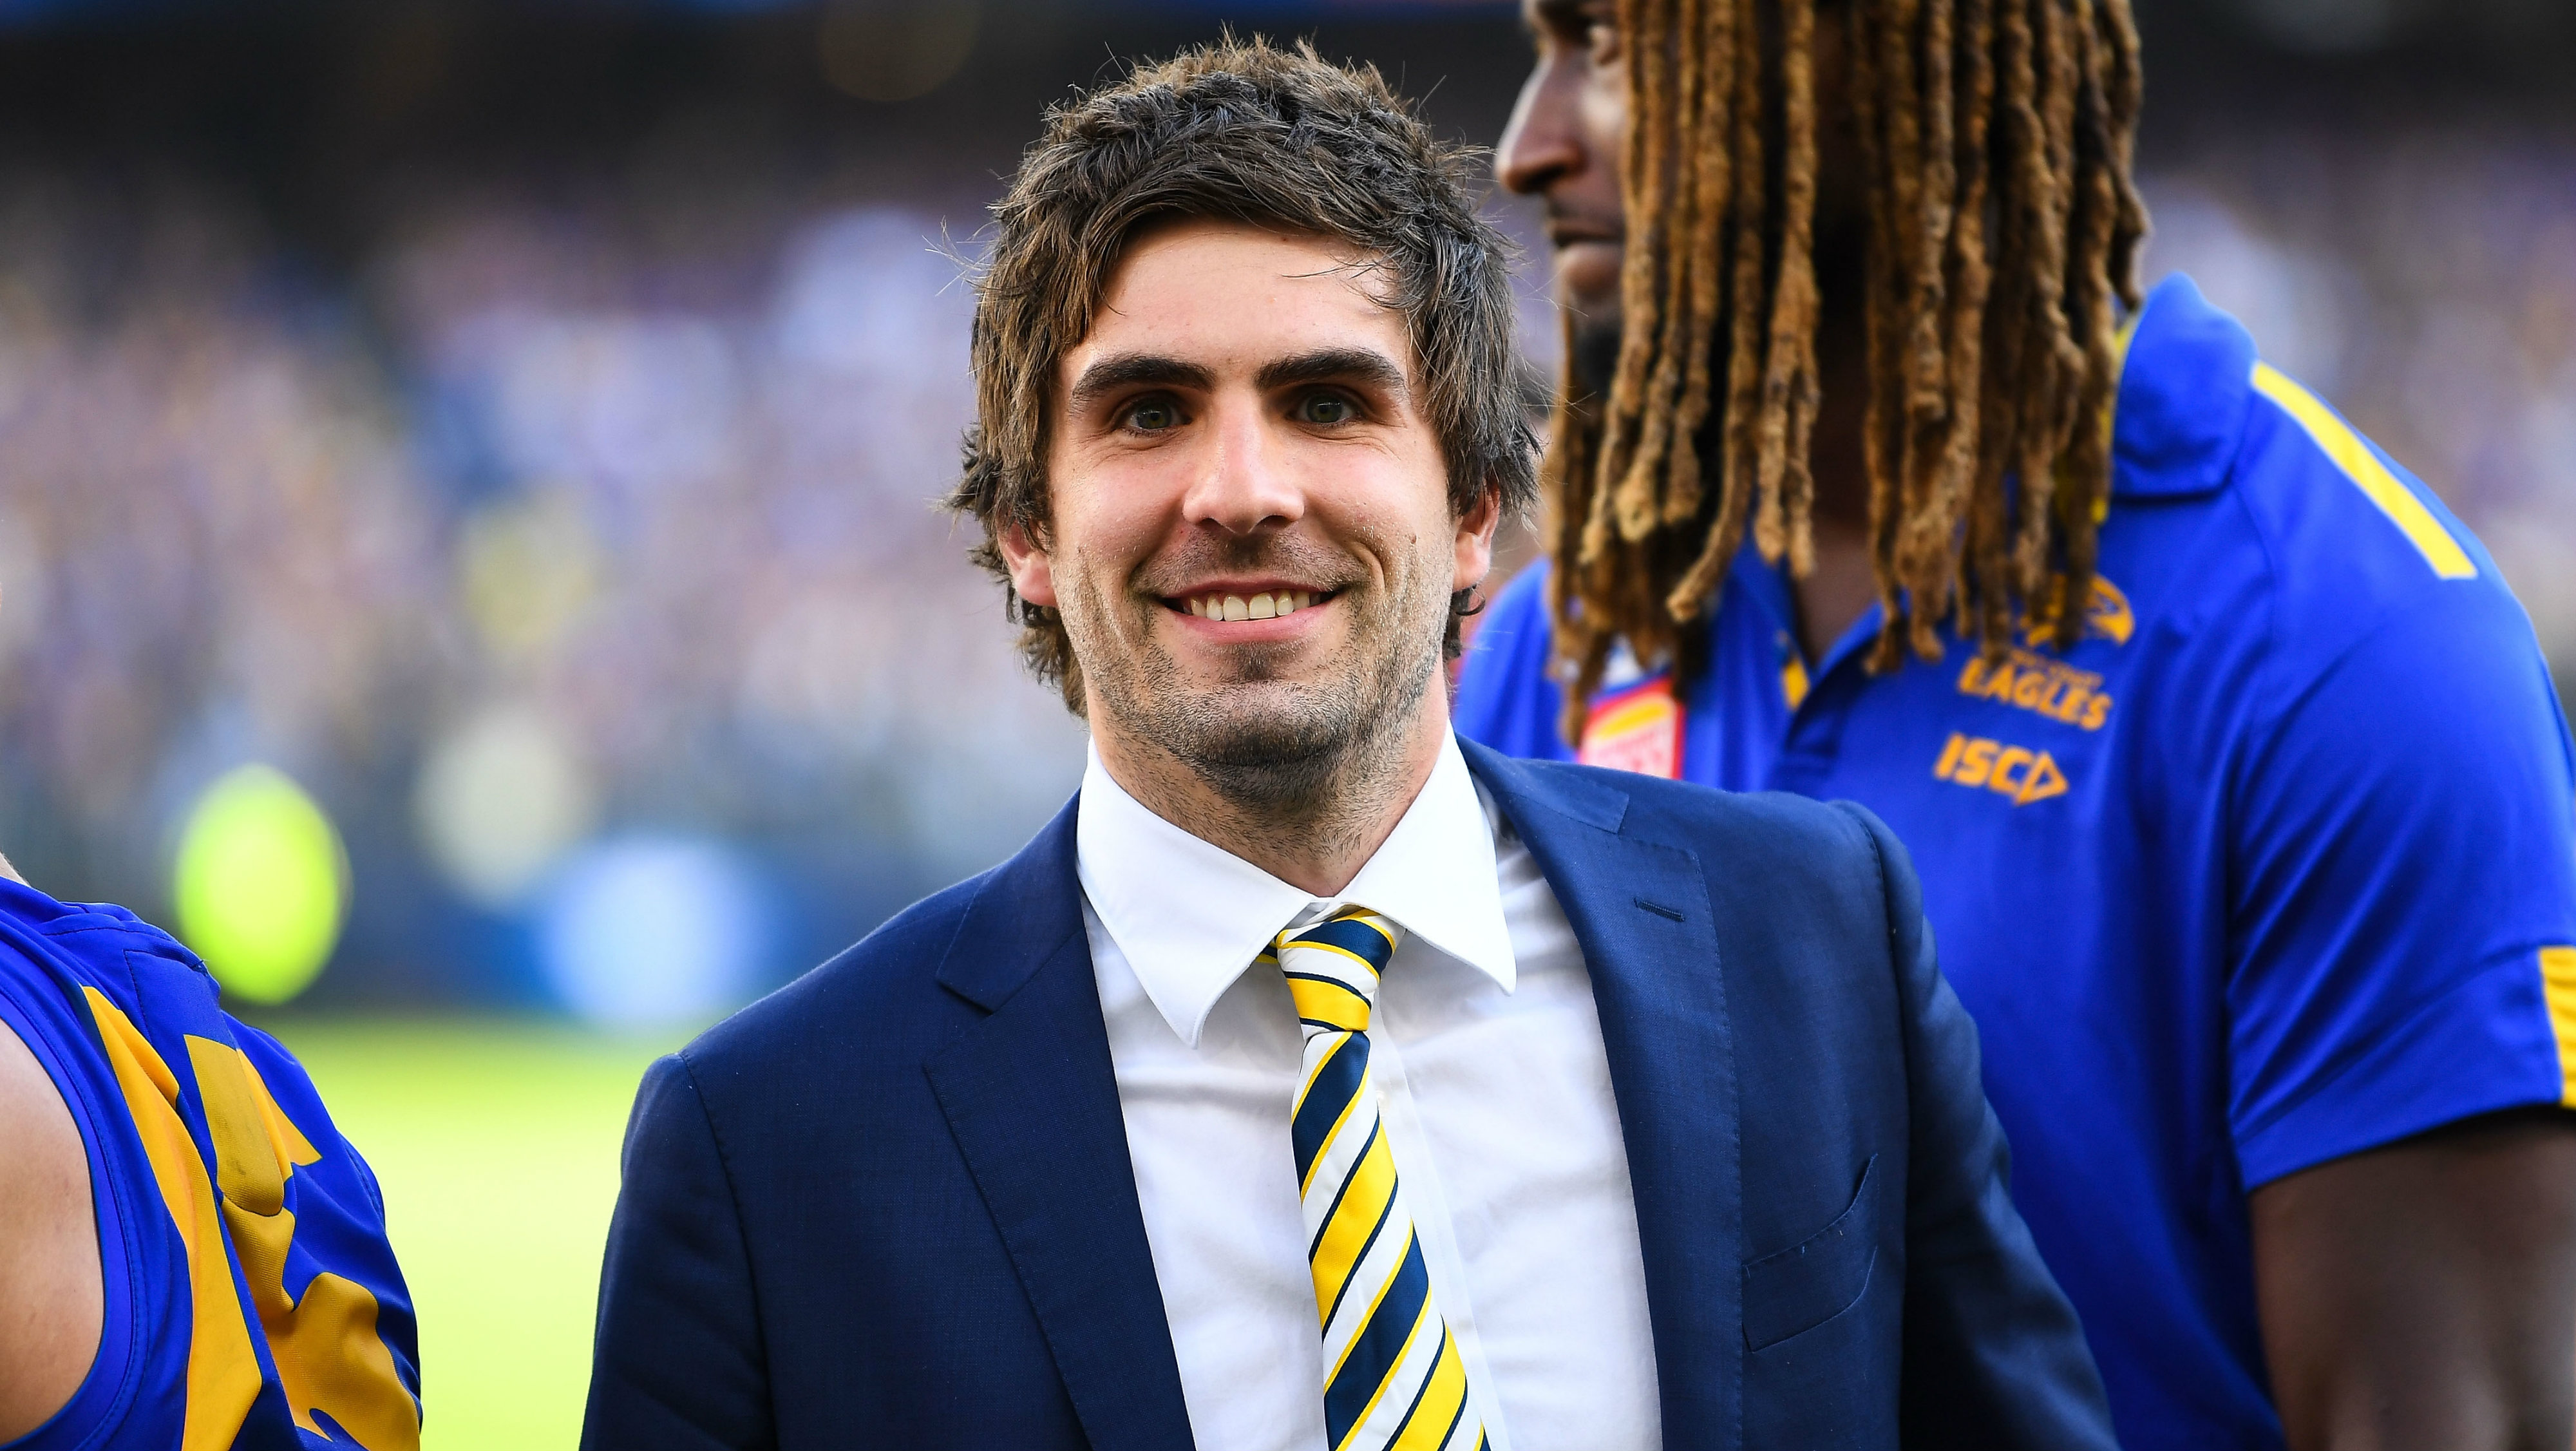 AFL trade: Andrew Gaff commits to contract extension with West Coast Eagles